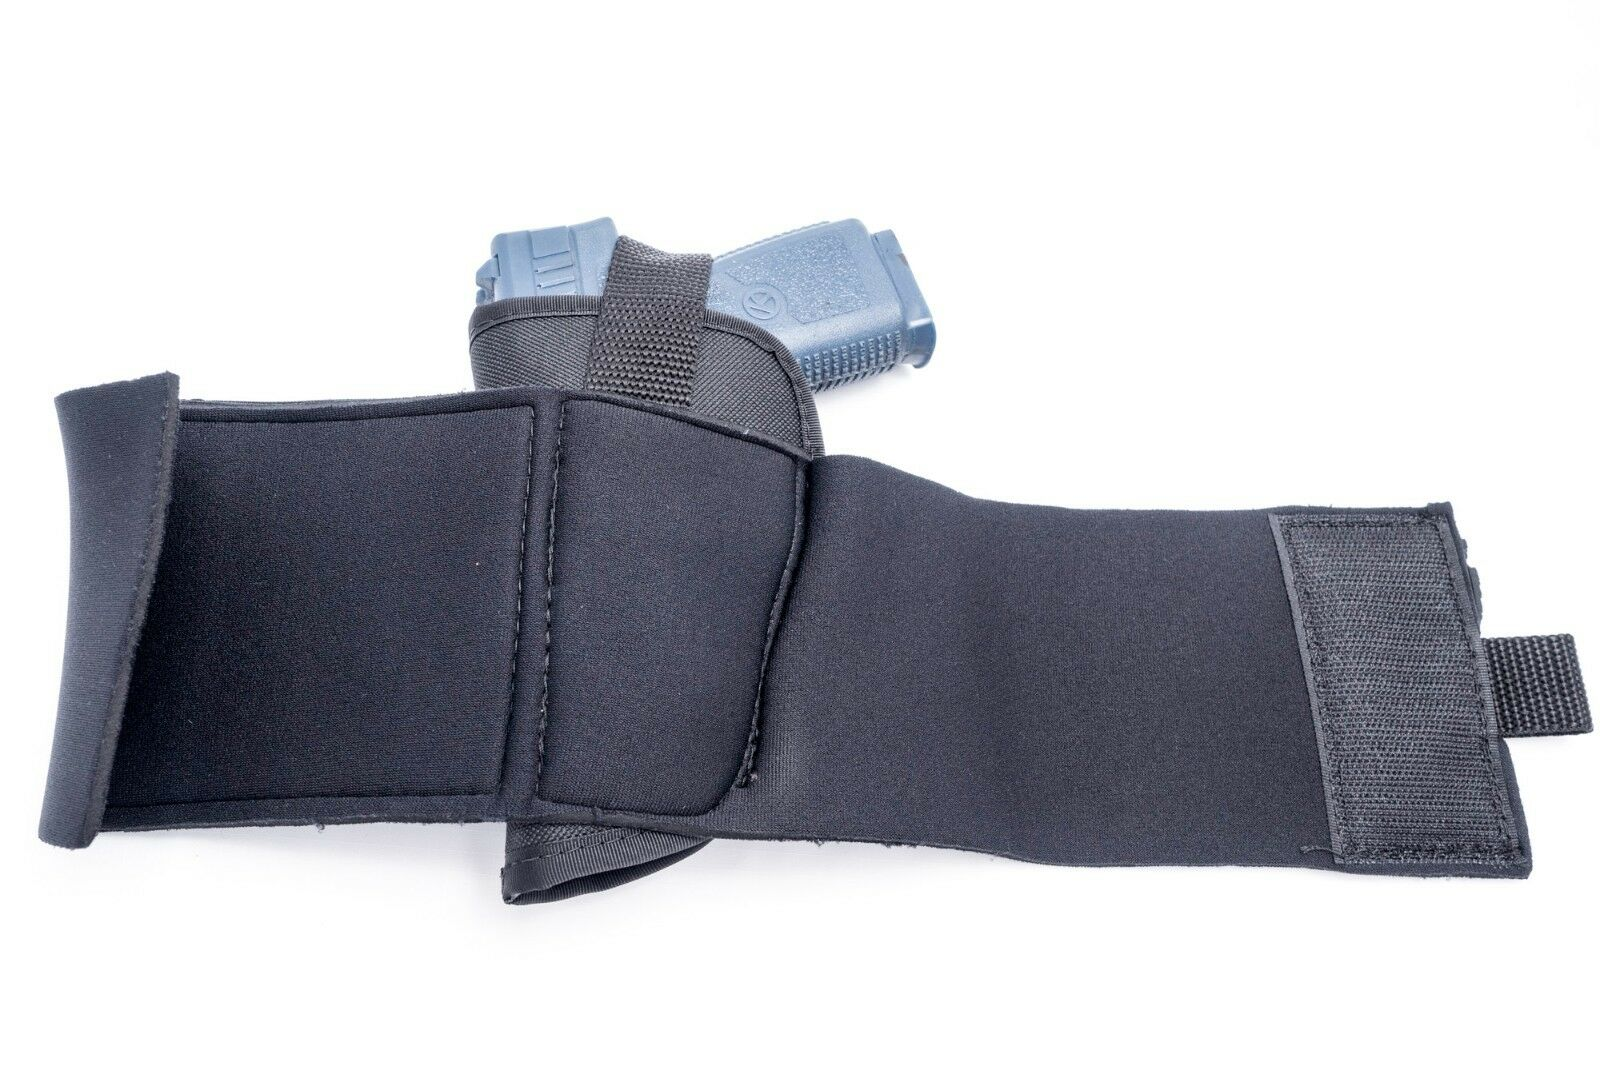 Made in U S A Polish P-64  Outbags Nylon Neoprene Ankle Holster